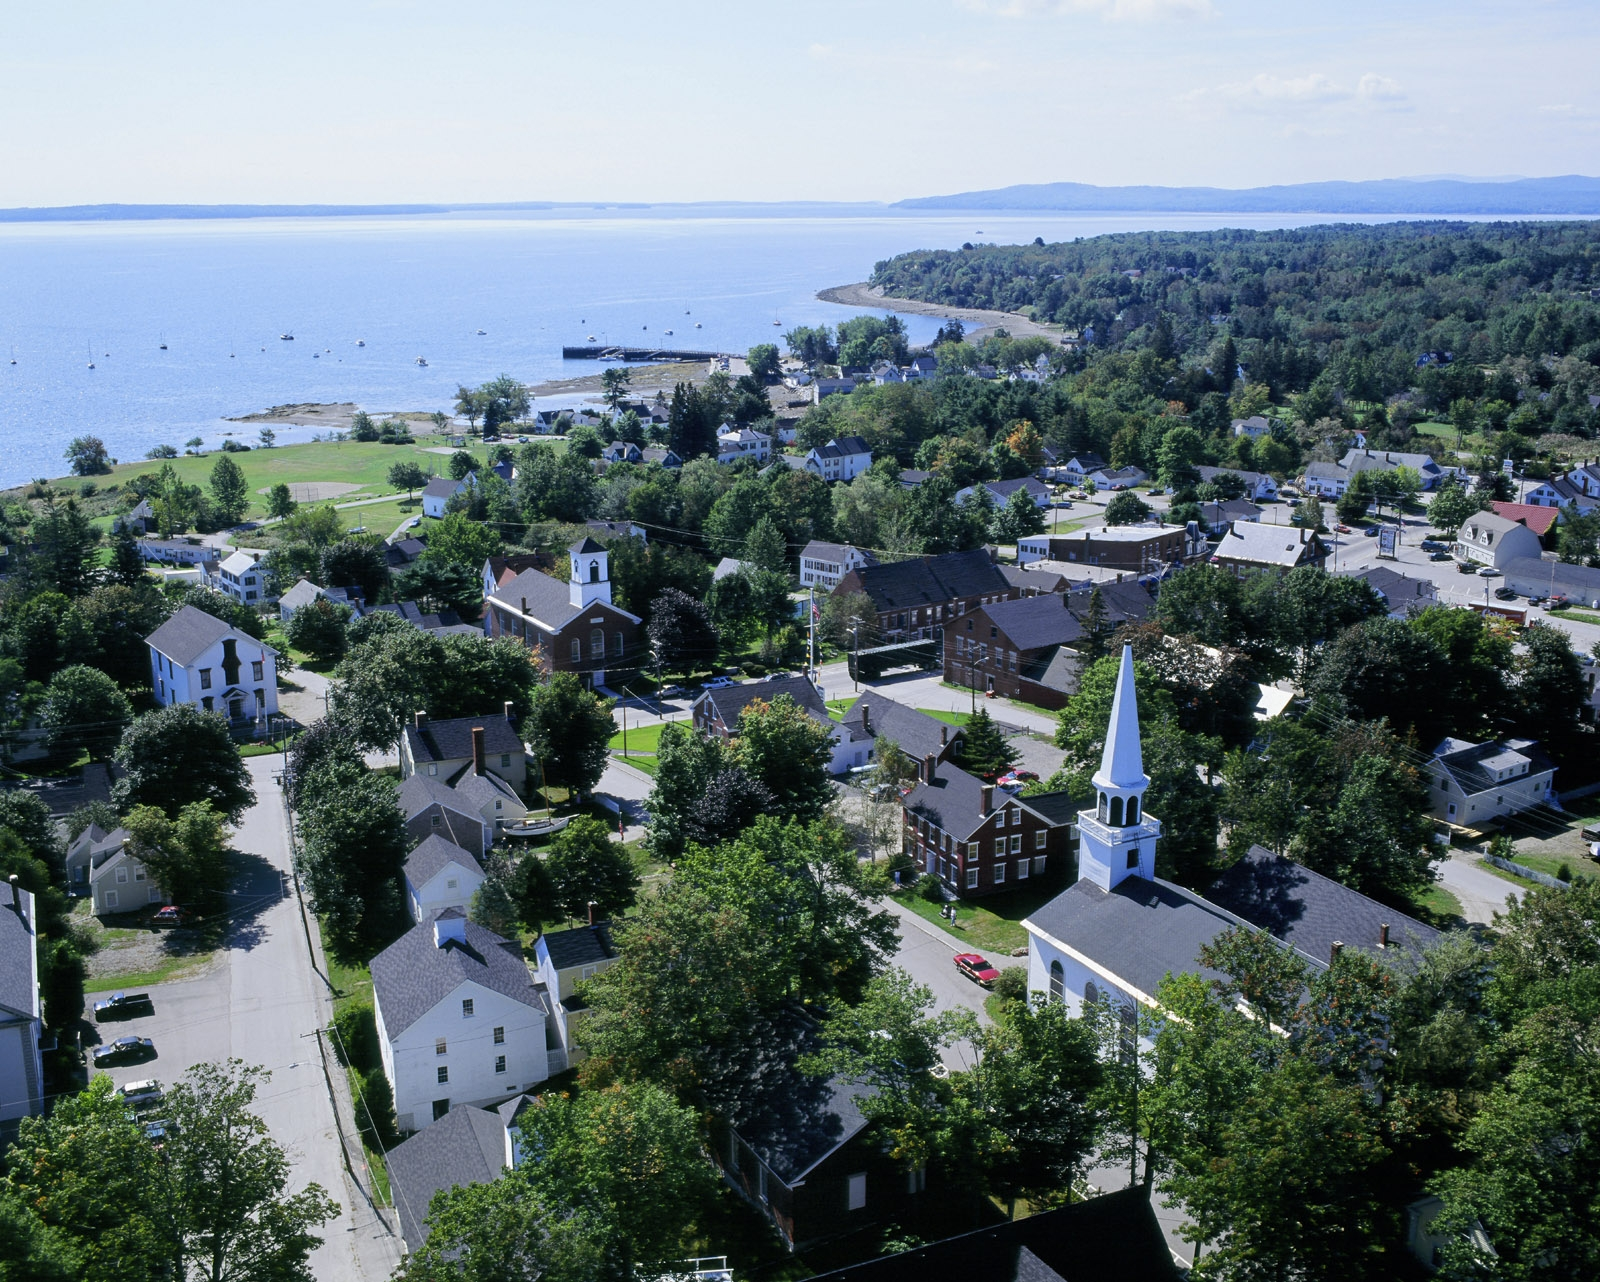 Aerial image of Penobscot Marine Museum nestled in the seaside town of Searsport.